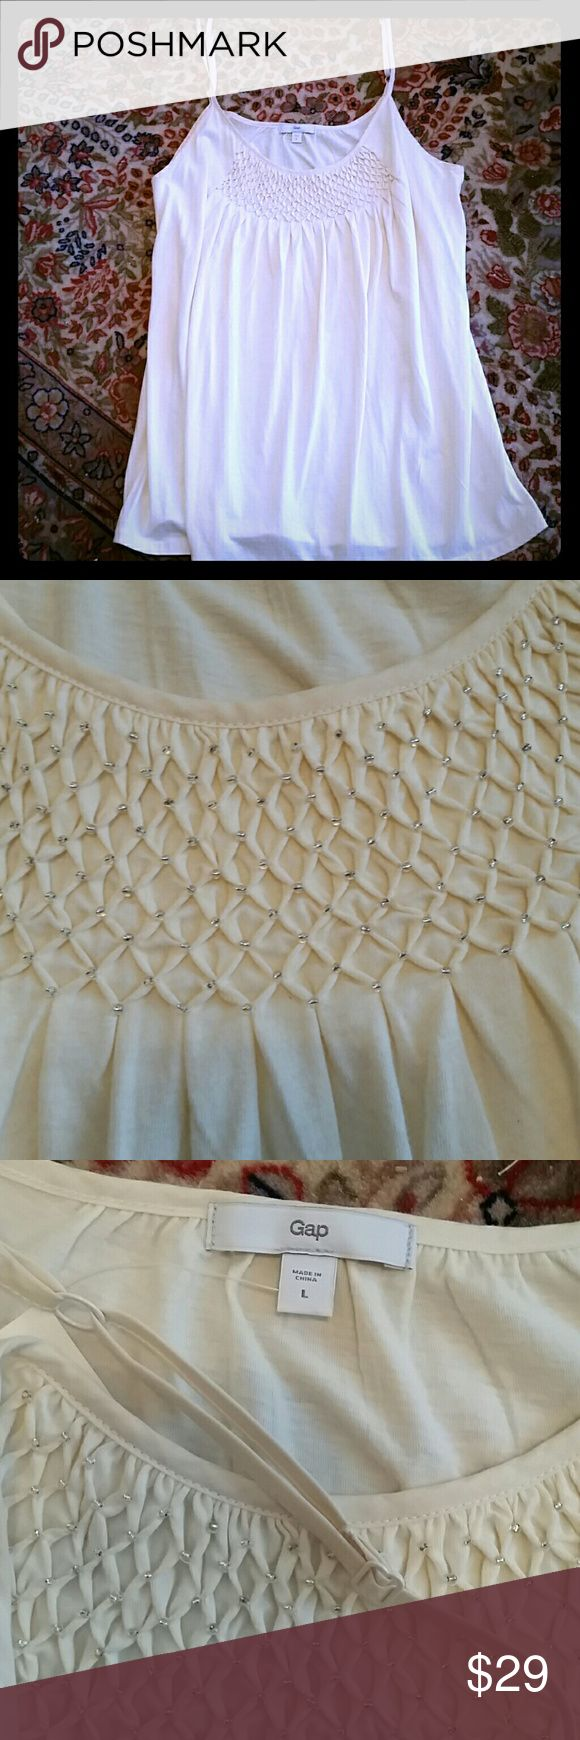 🌻🍁Beaded Camisole🍁 Lovely ivory camisole with smocking and tiny silver seed beads to accent the delicate pleats! Simple staple garment with pretty details!  The fit is relaxed yet sophisticated enough for under a jacket.  60%Pima cotton / 40%modal. GAP Tops Camisoles